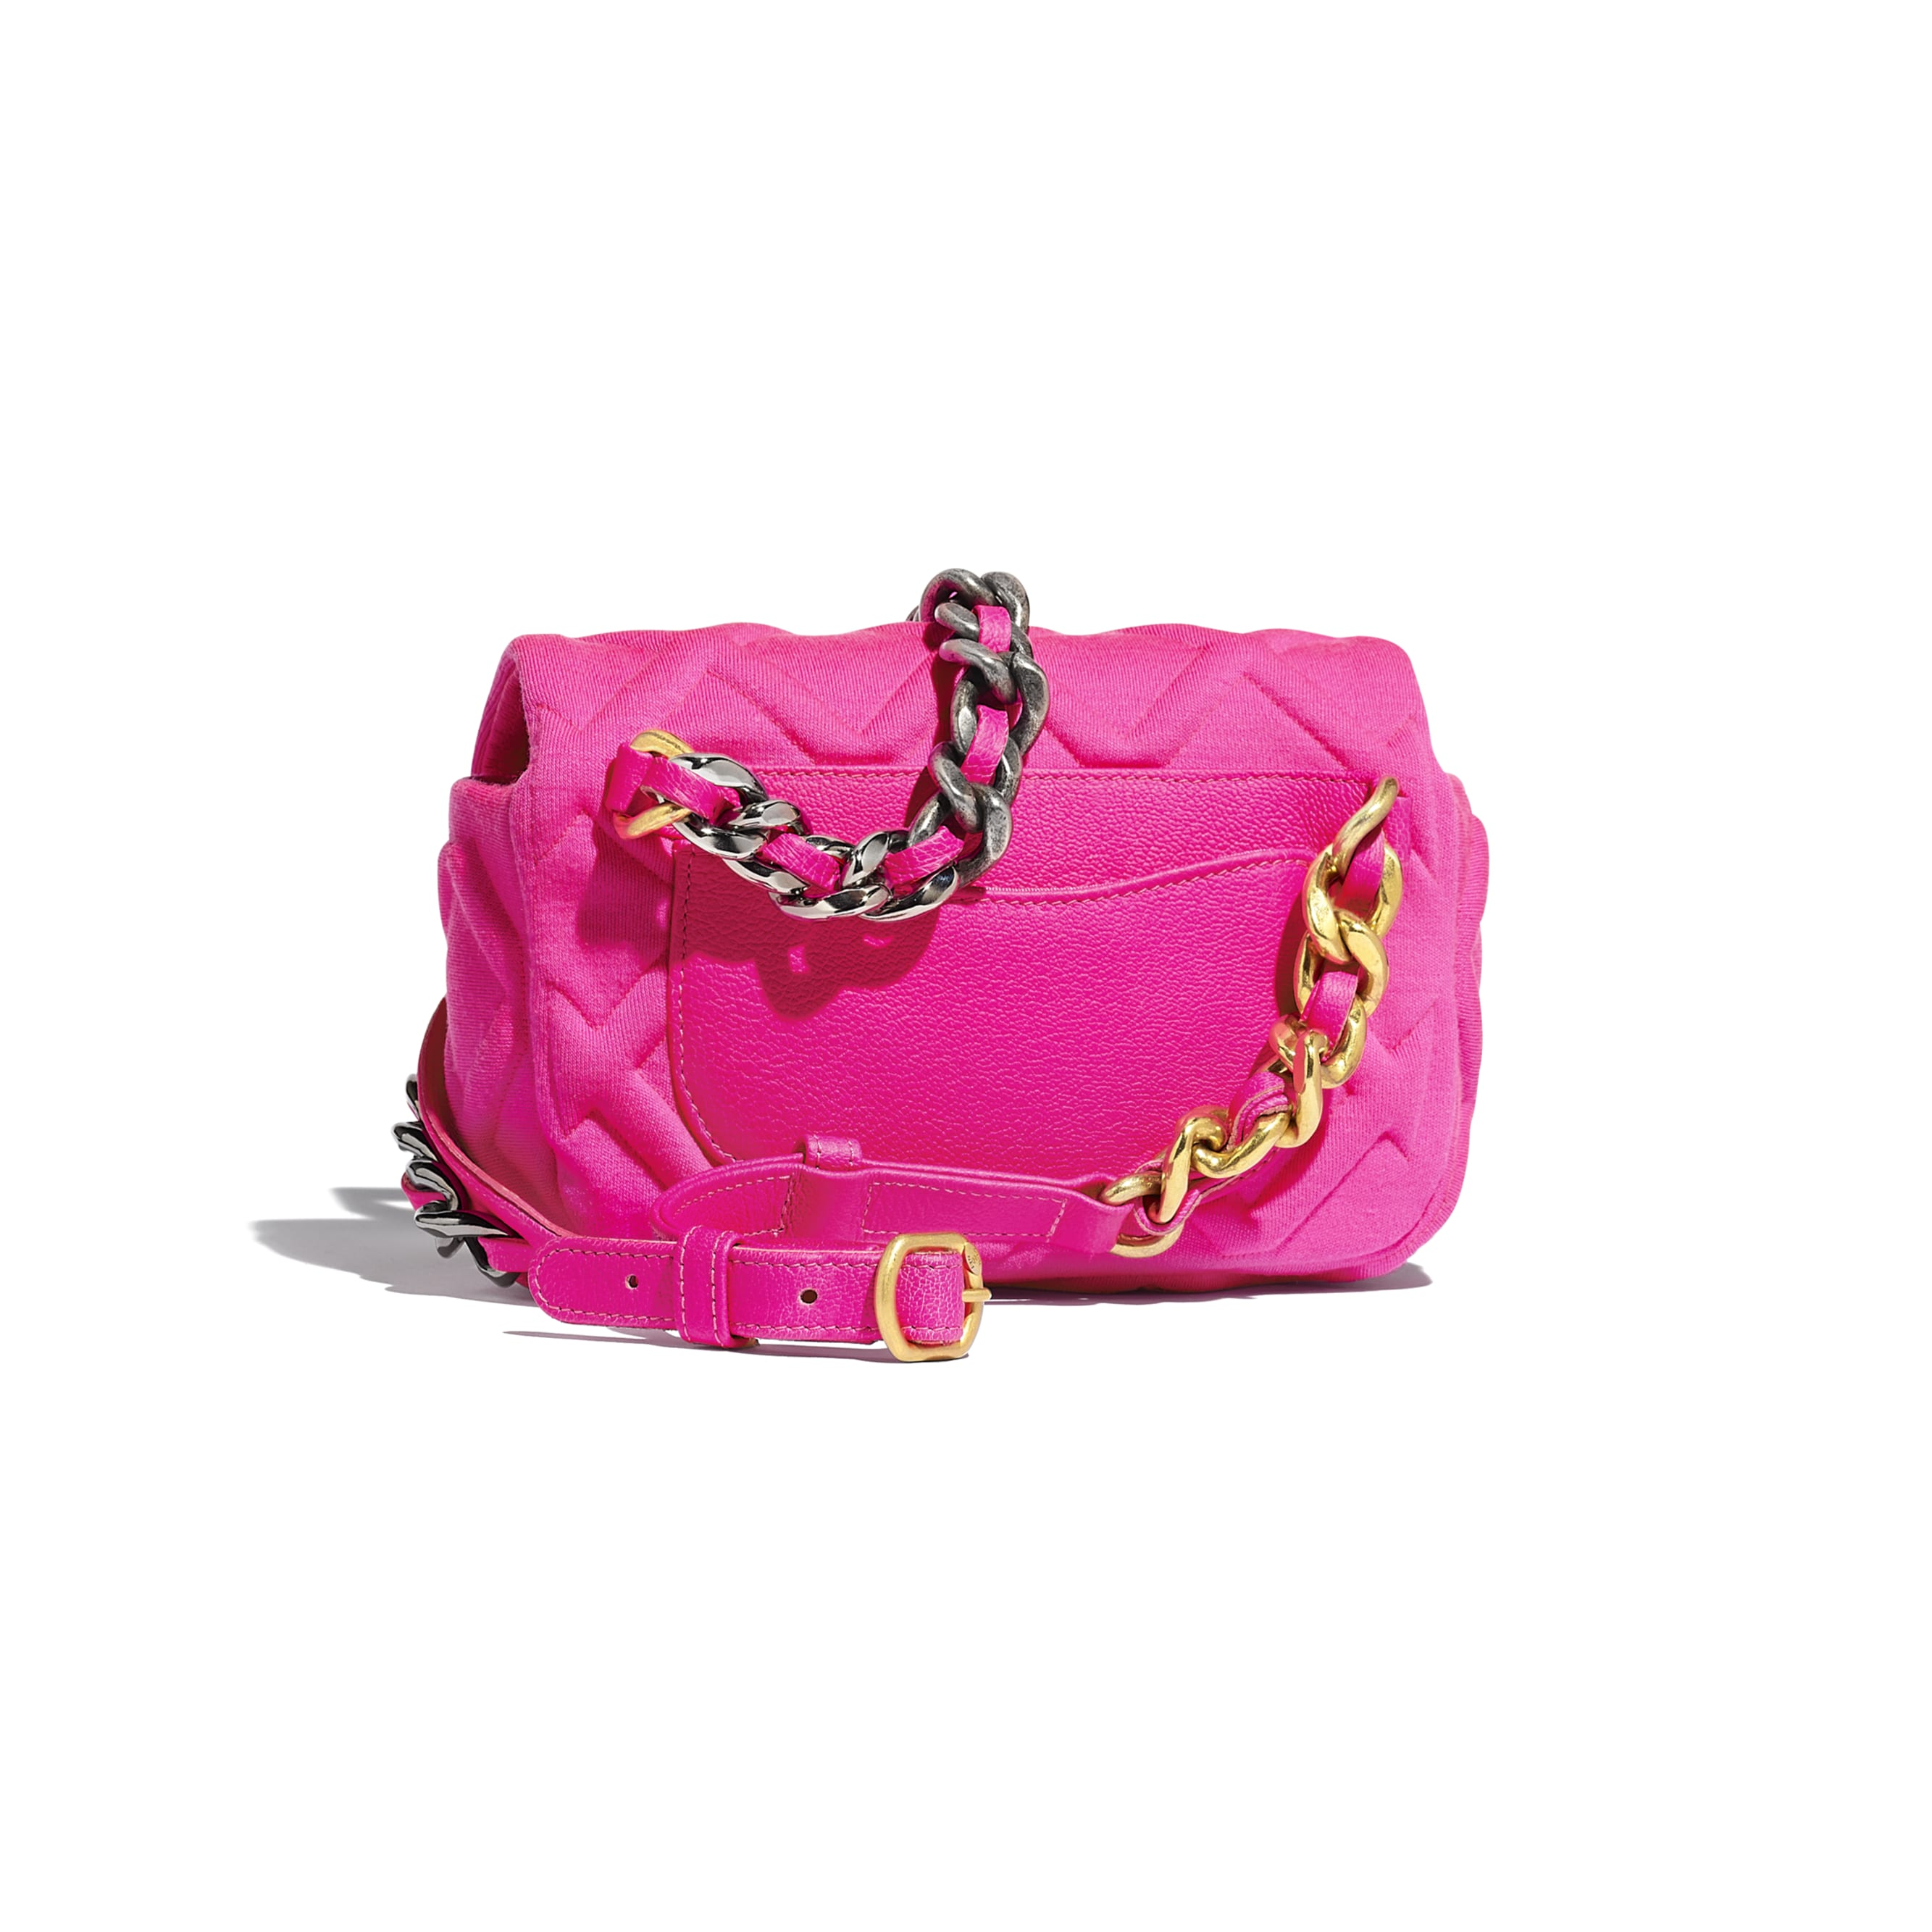 CHANEL 19 Waist Bag - Fuchsia - Jersey, Gold-Tone, Silver-Tone & Ruthenium-Finish Metal - Alternative view - see standard sized version